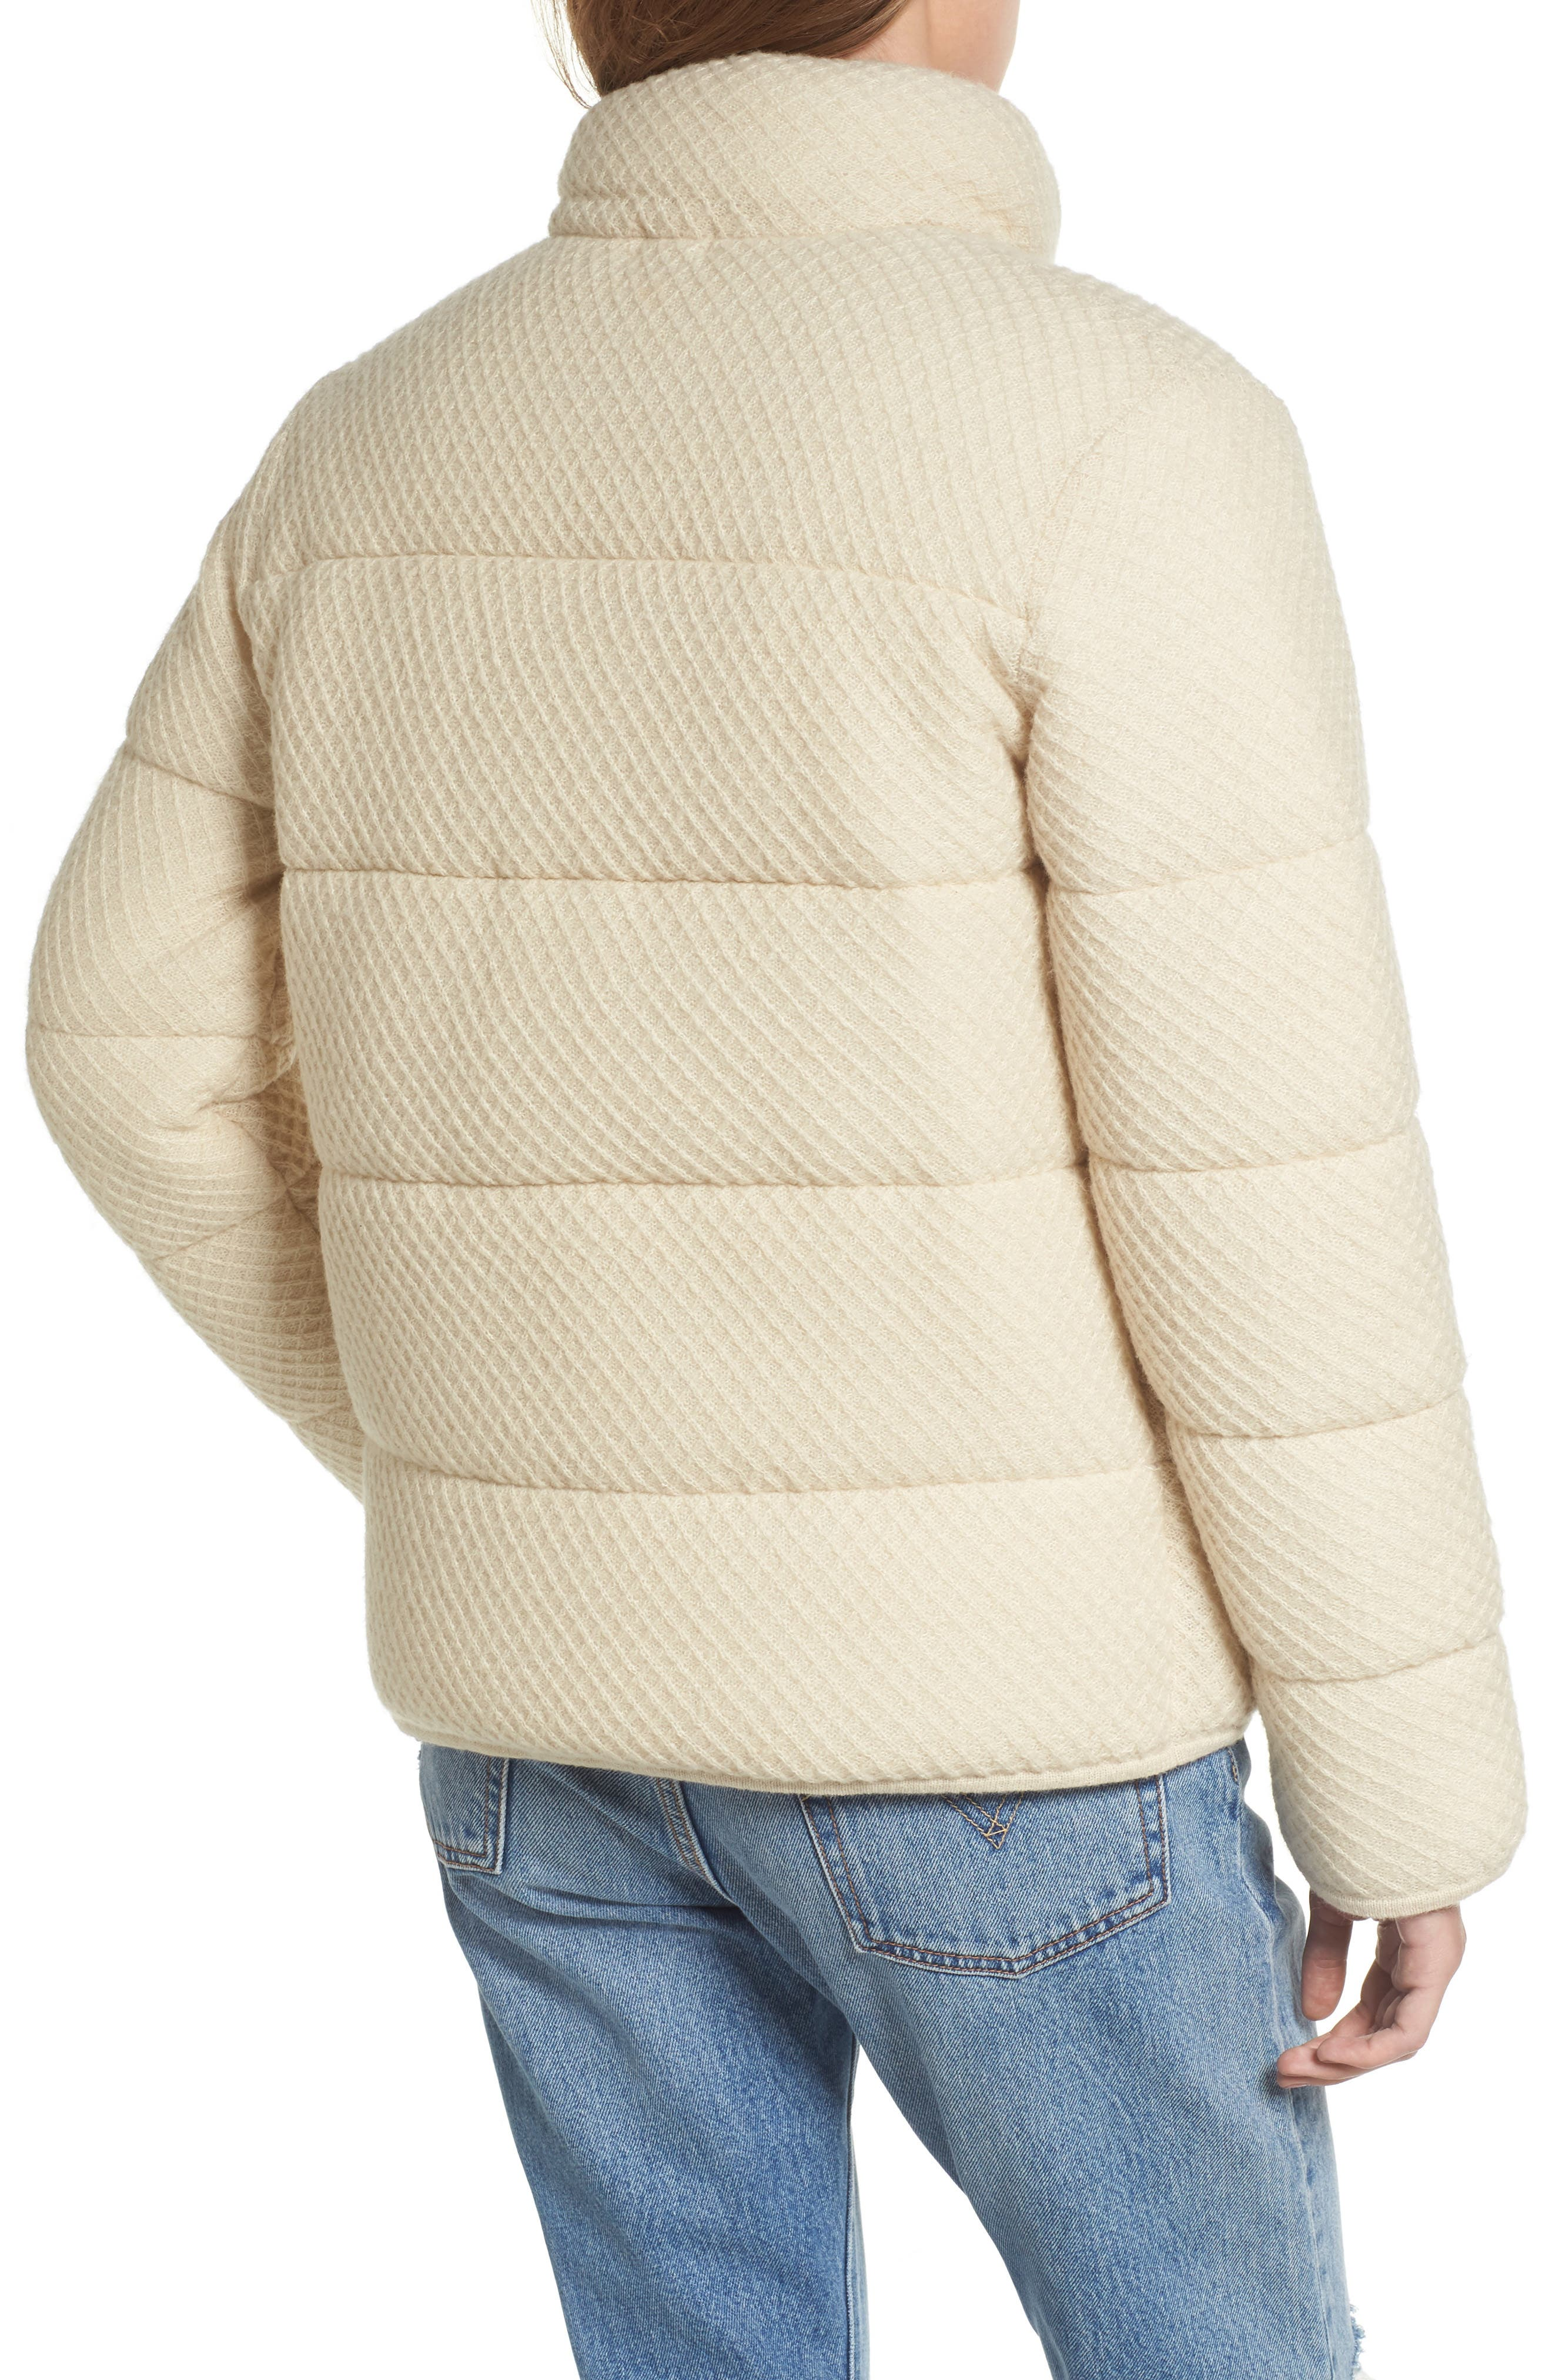 Knit Puffer Jacket,                             Alternate thumbnail 2, color,                             900